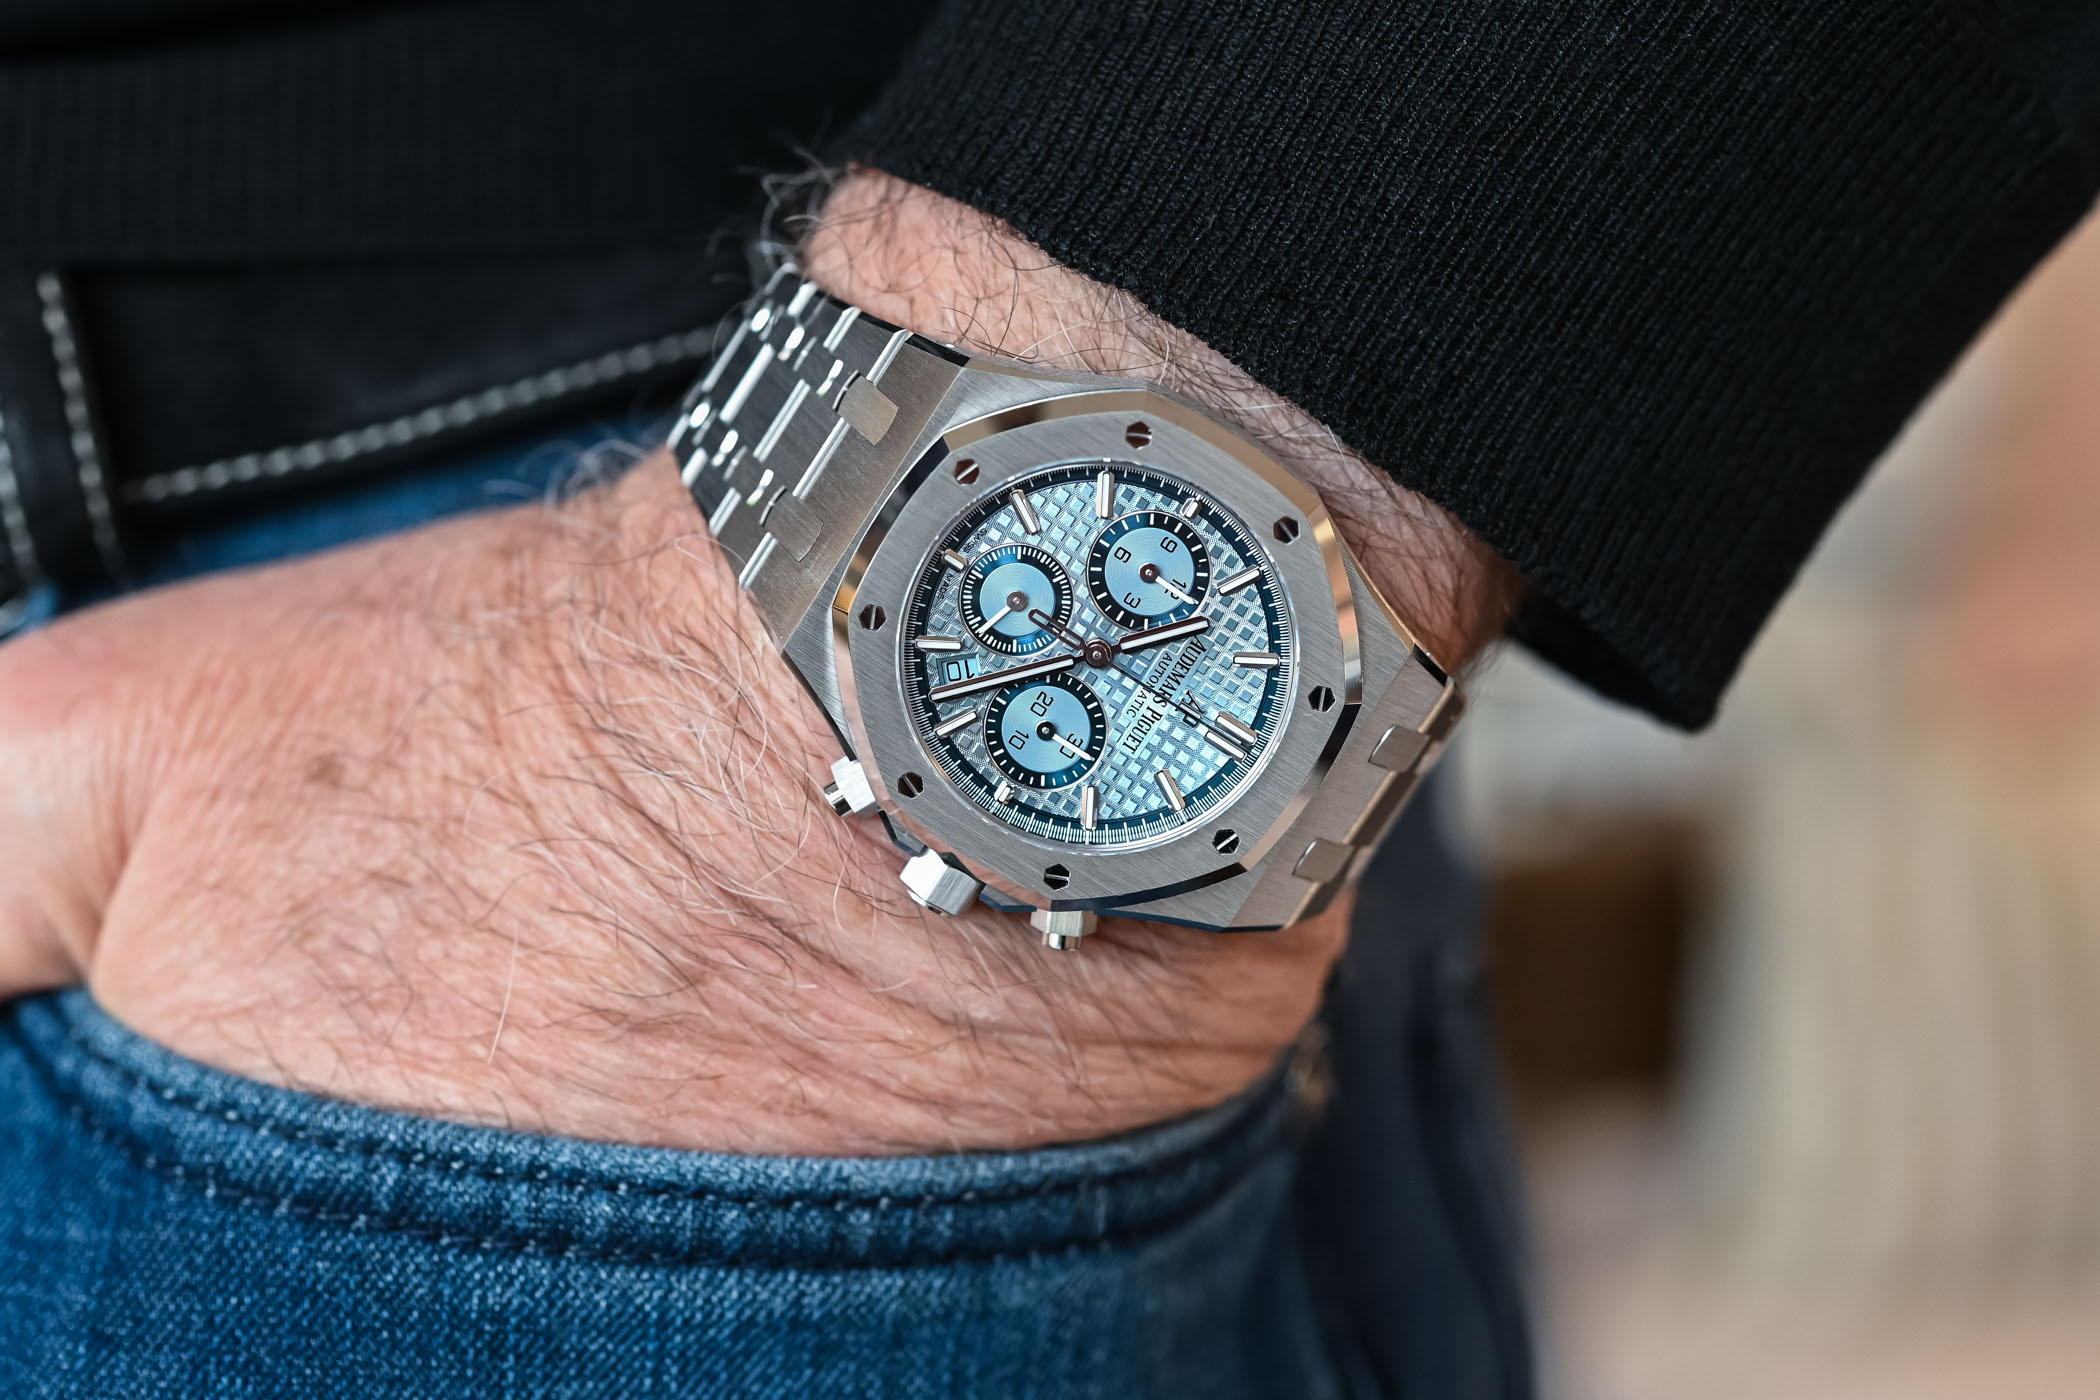 Audemars Piguet Royal Oak Selfwinding Chronograph 38mm Ice Blue Dial White Gold Limited Edition - 26317BC